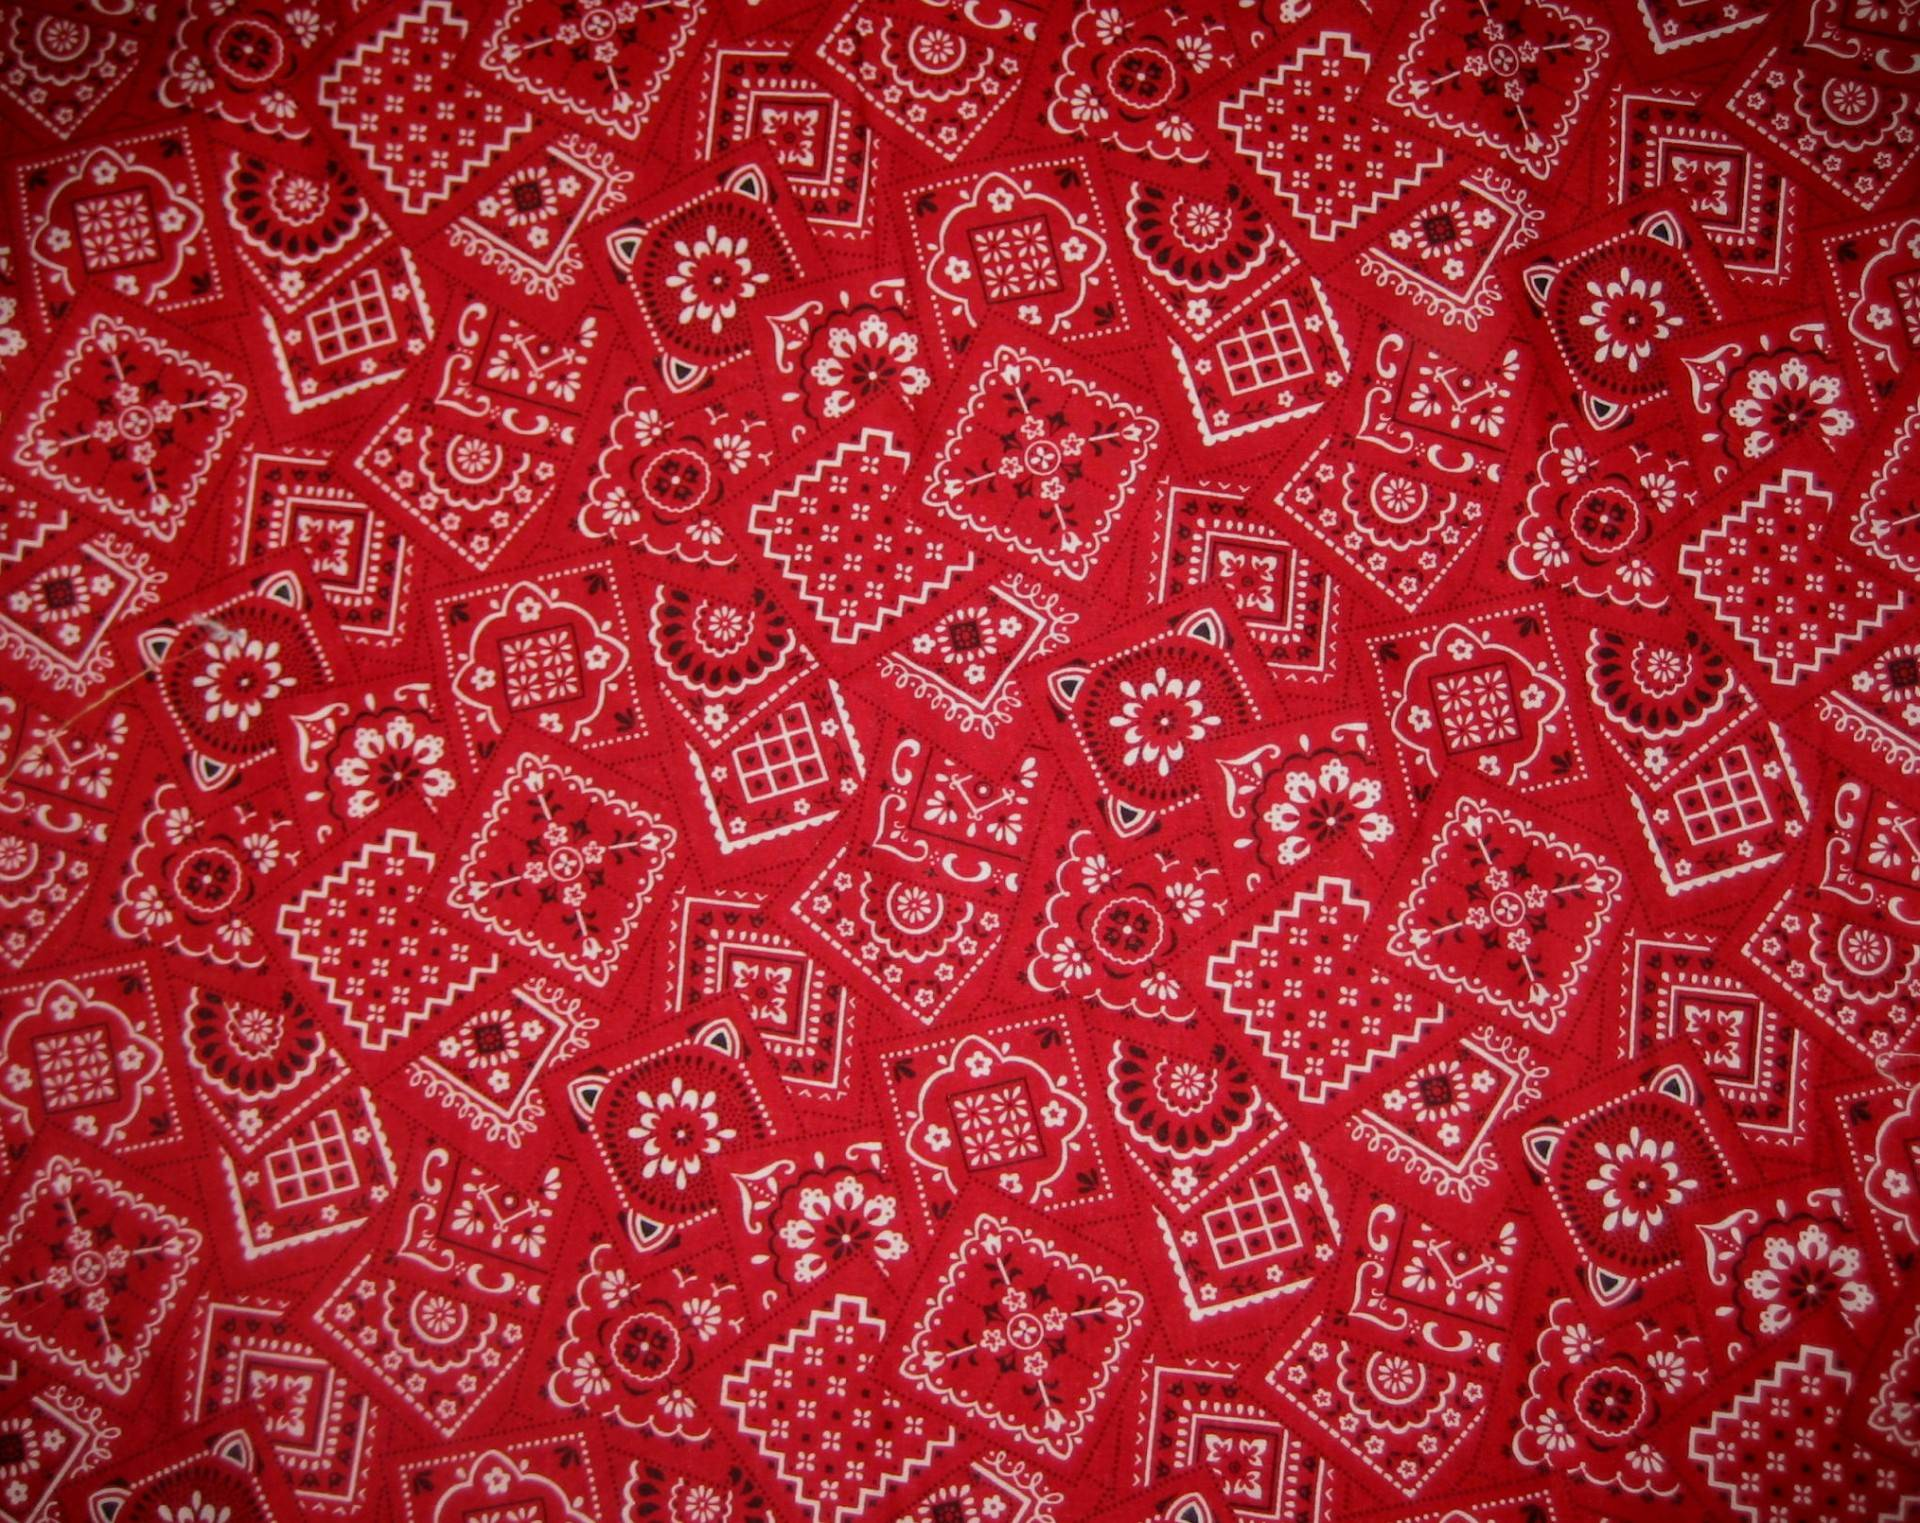 bandana desktop wallpaper - photo #3